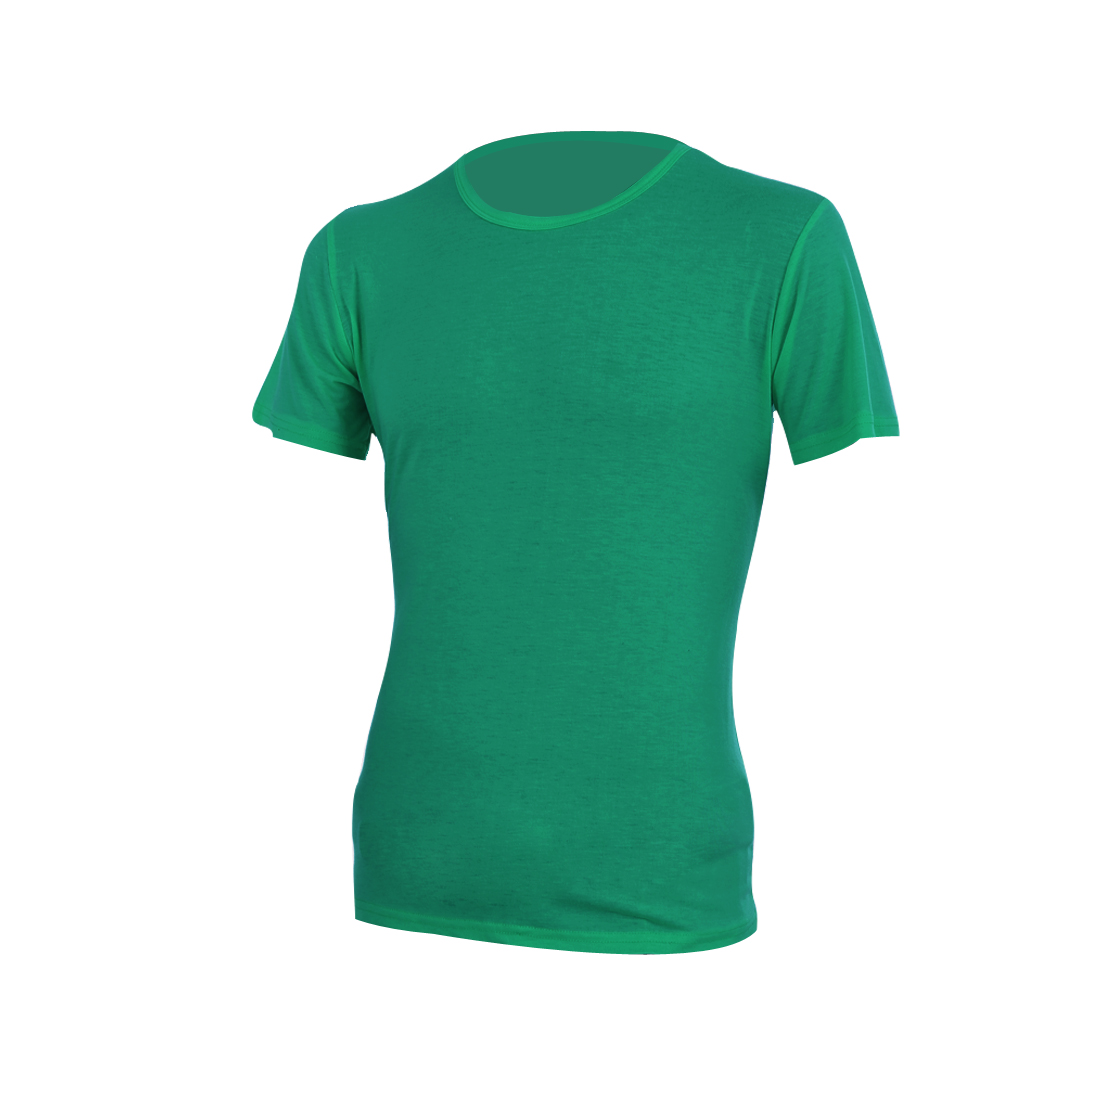 Men Round Neck Stretchy Style Short Sleeve Design Summer Tee Shirt M Green